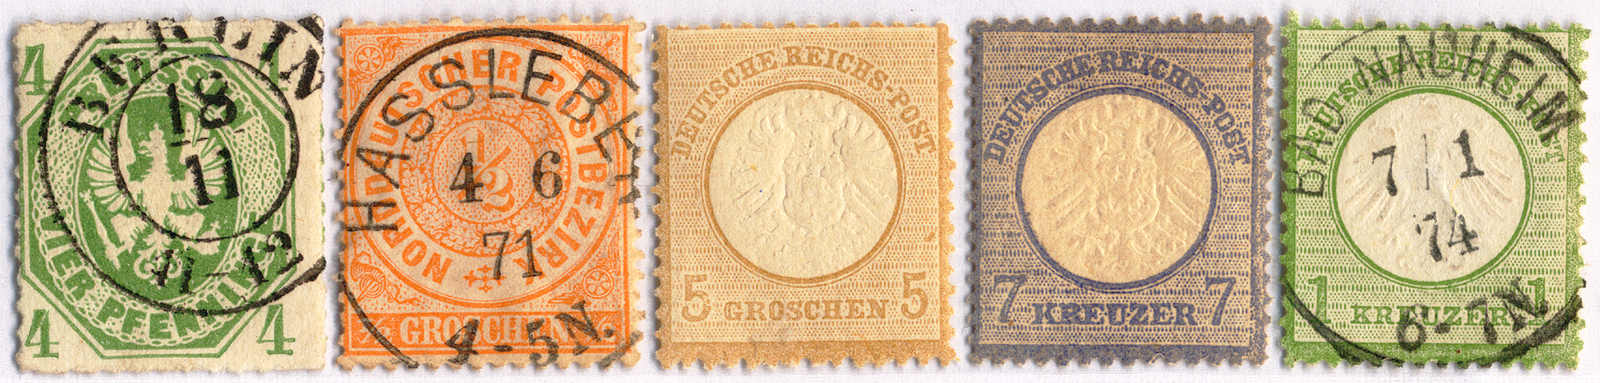 Lot 10001 - germany and colonies collections and lots germany -  Classicphil GmbH Auction #1